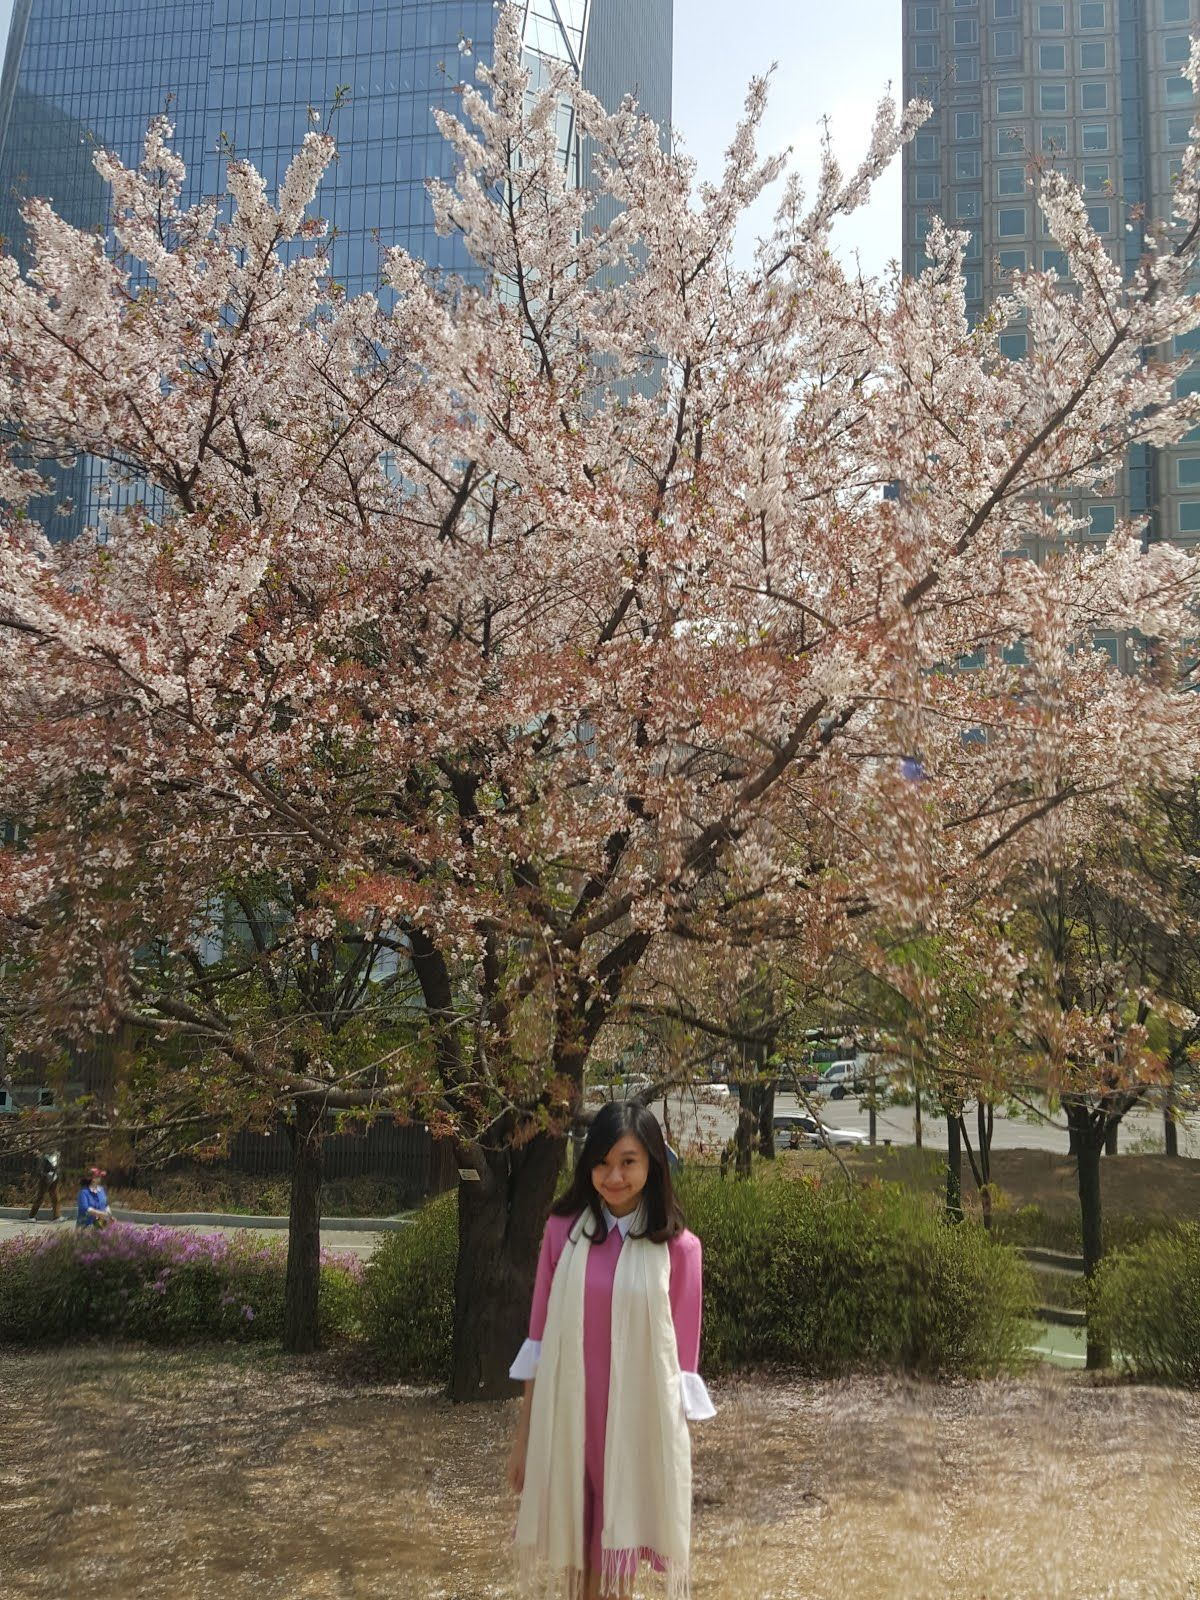 April Has Always Been My Favorite Month To Travel Due To Spring Weather And Sakura Travel Around South Korea Can Be E South Korea Spring Weather Travel Around